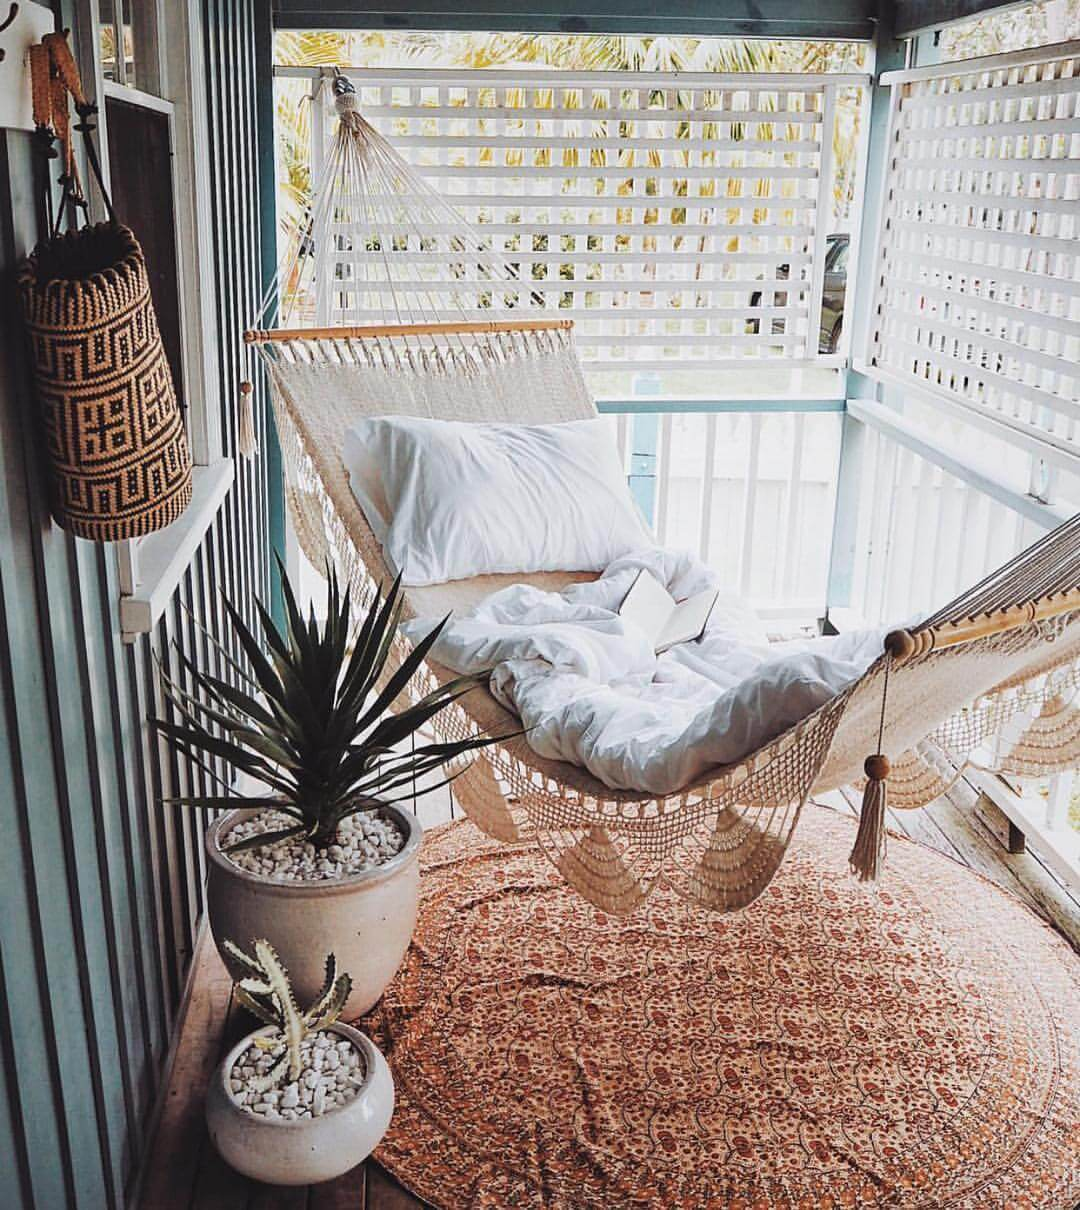 A chic hammock on a boho balcony